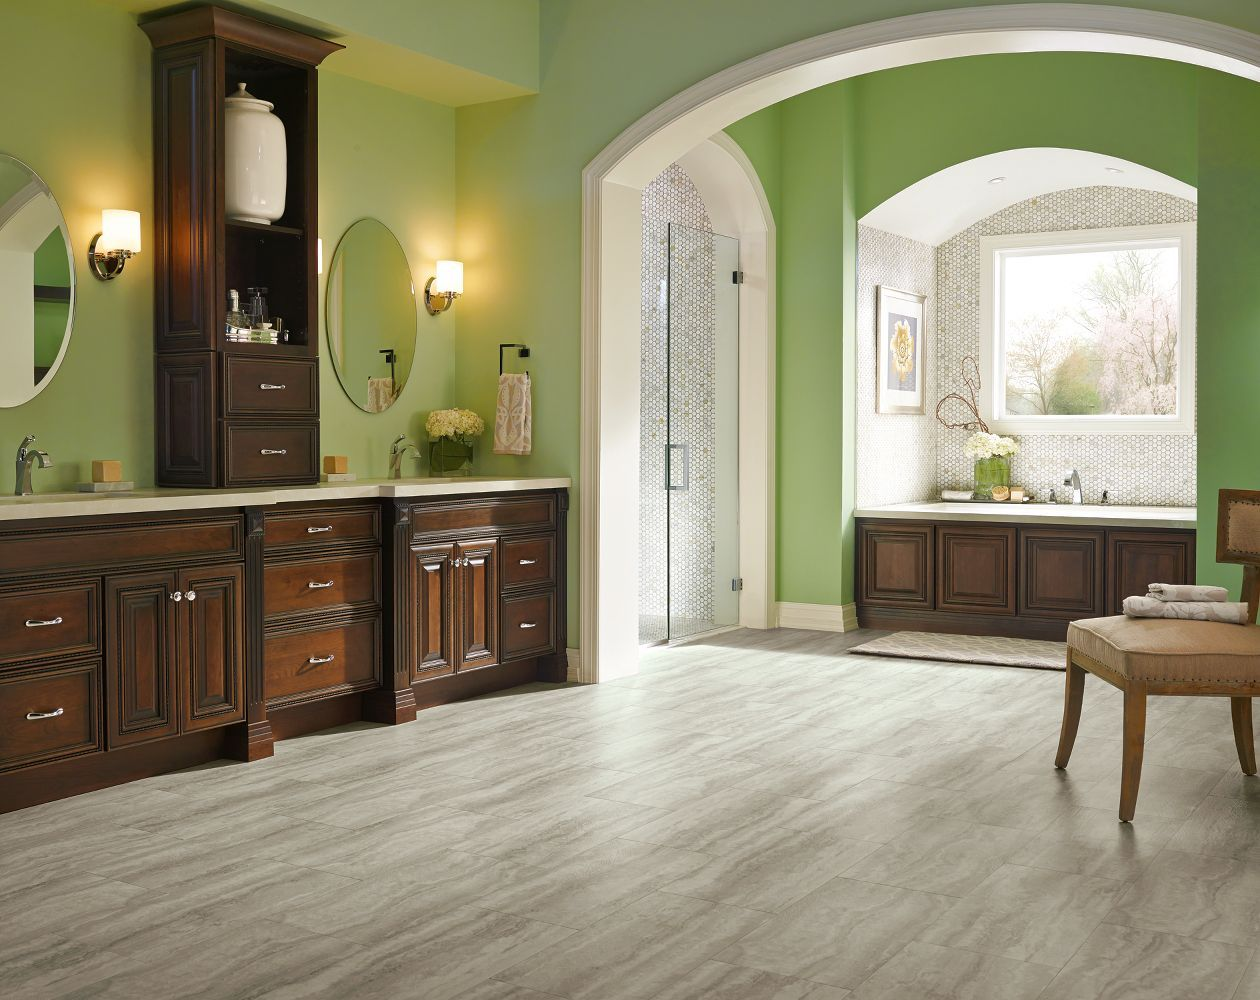 Armstrong bathroom cabinets - Learn More About Armstrong Piazza Travertine Dovetail And Order A Sample Or Find A Flooring